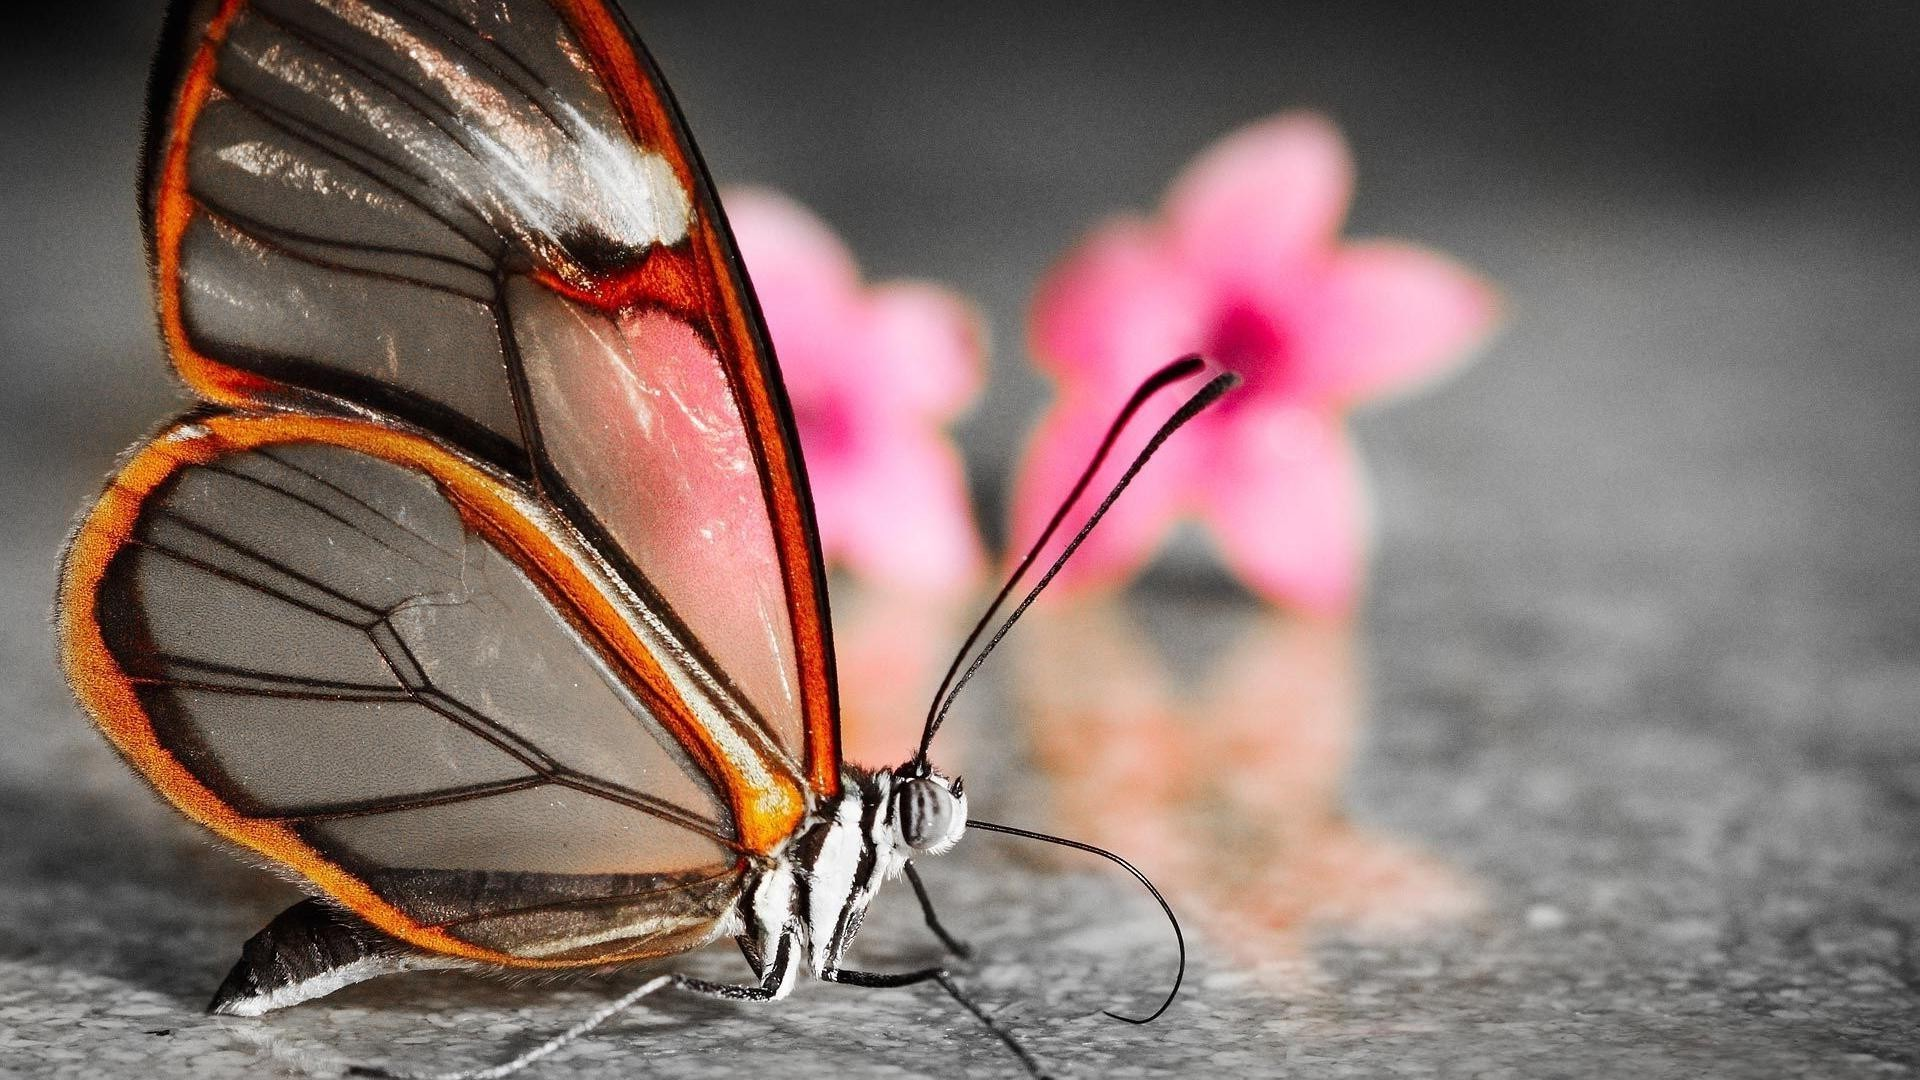 animals butterfly insect invertebrate nature outdoors one wildlife summer wing animal flower daylight color